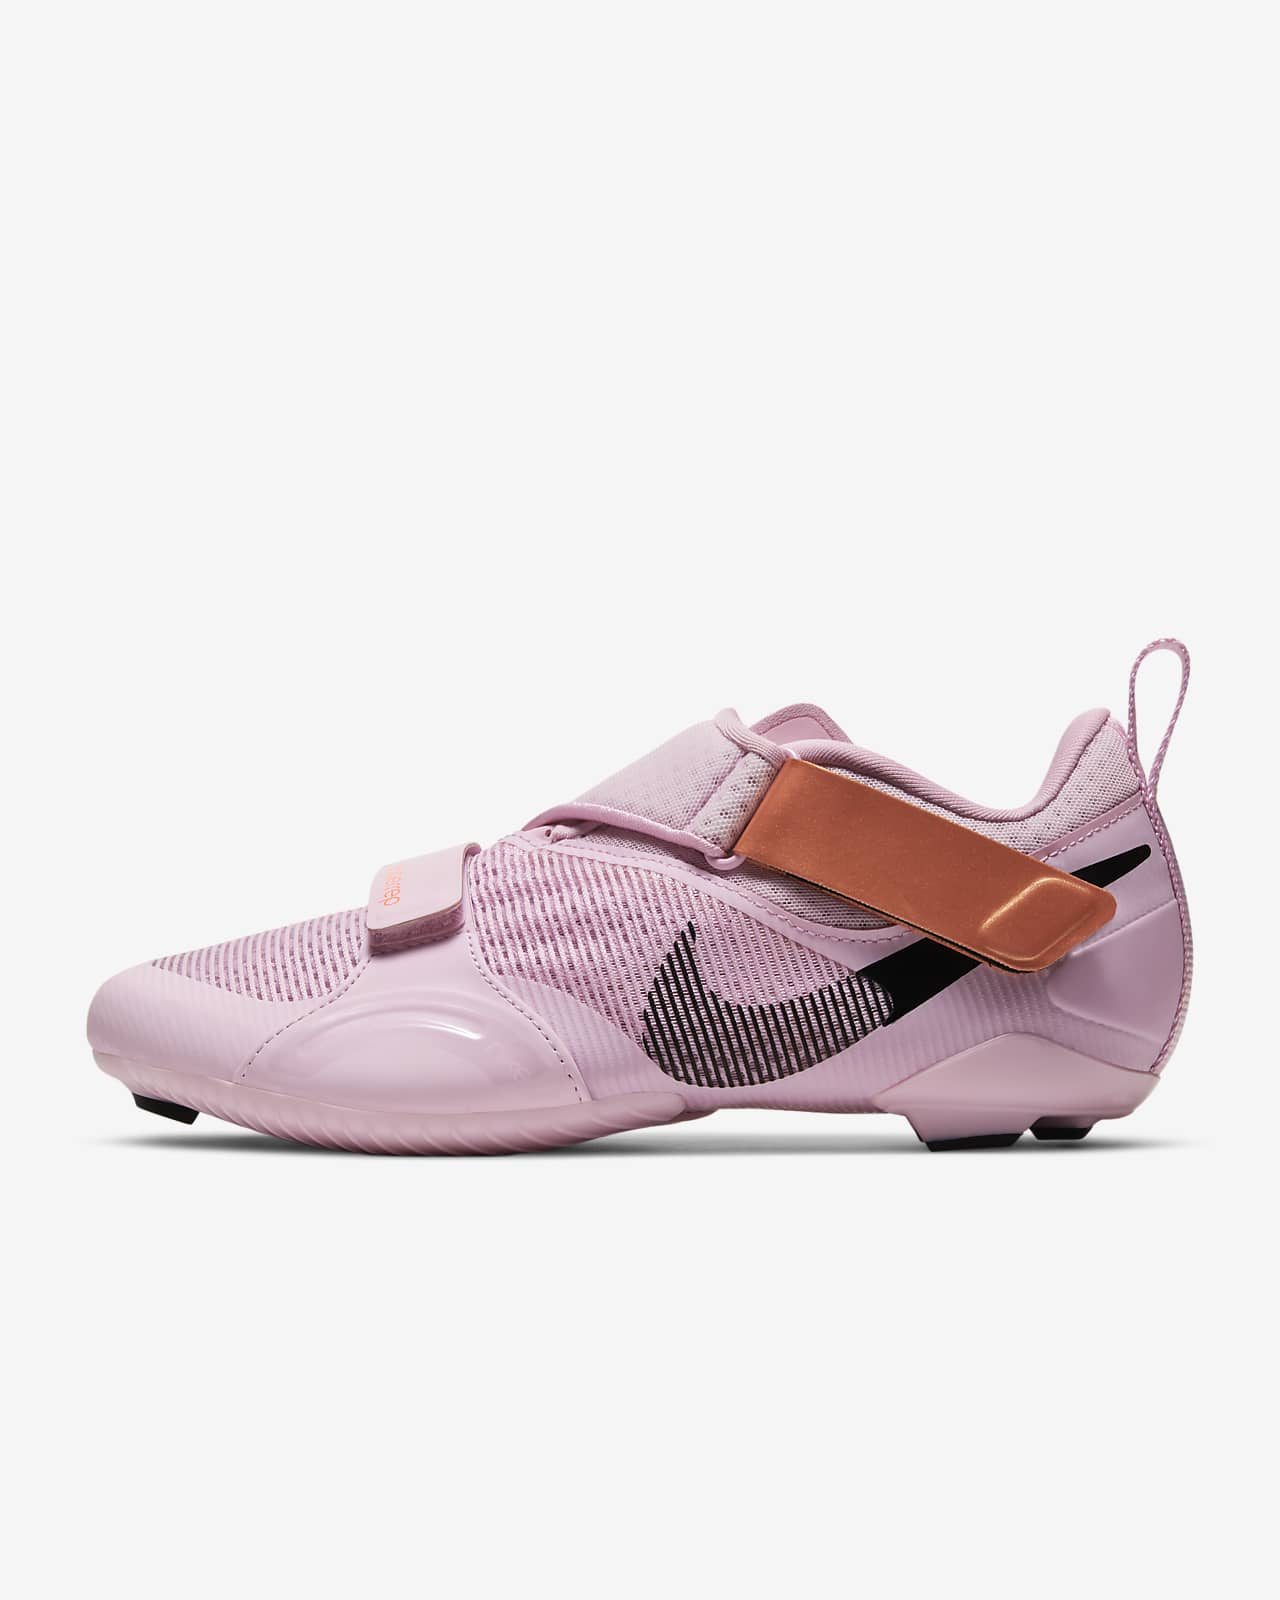 Asociar Desgracia Excesivo  Nike SuperRep Cycle Women's Indoor Cycling Shoe. Nike AU